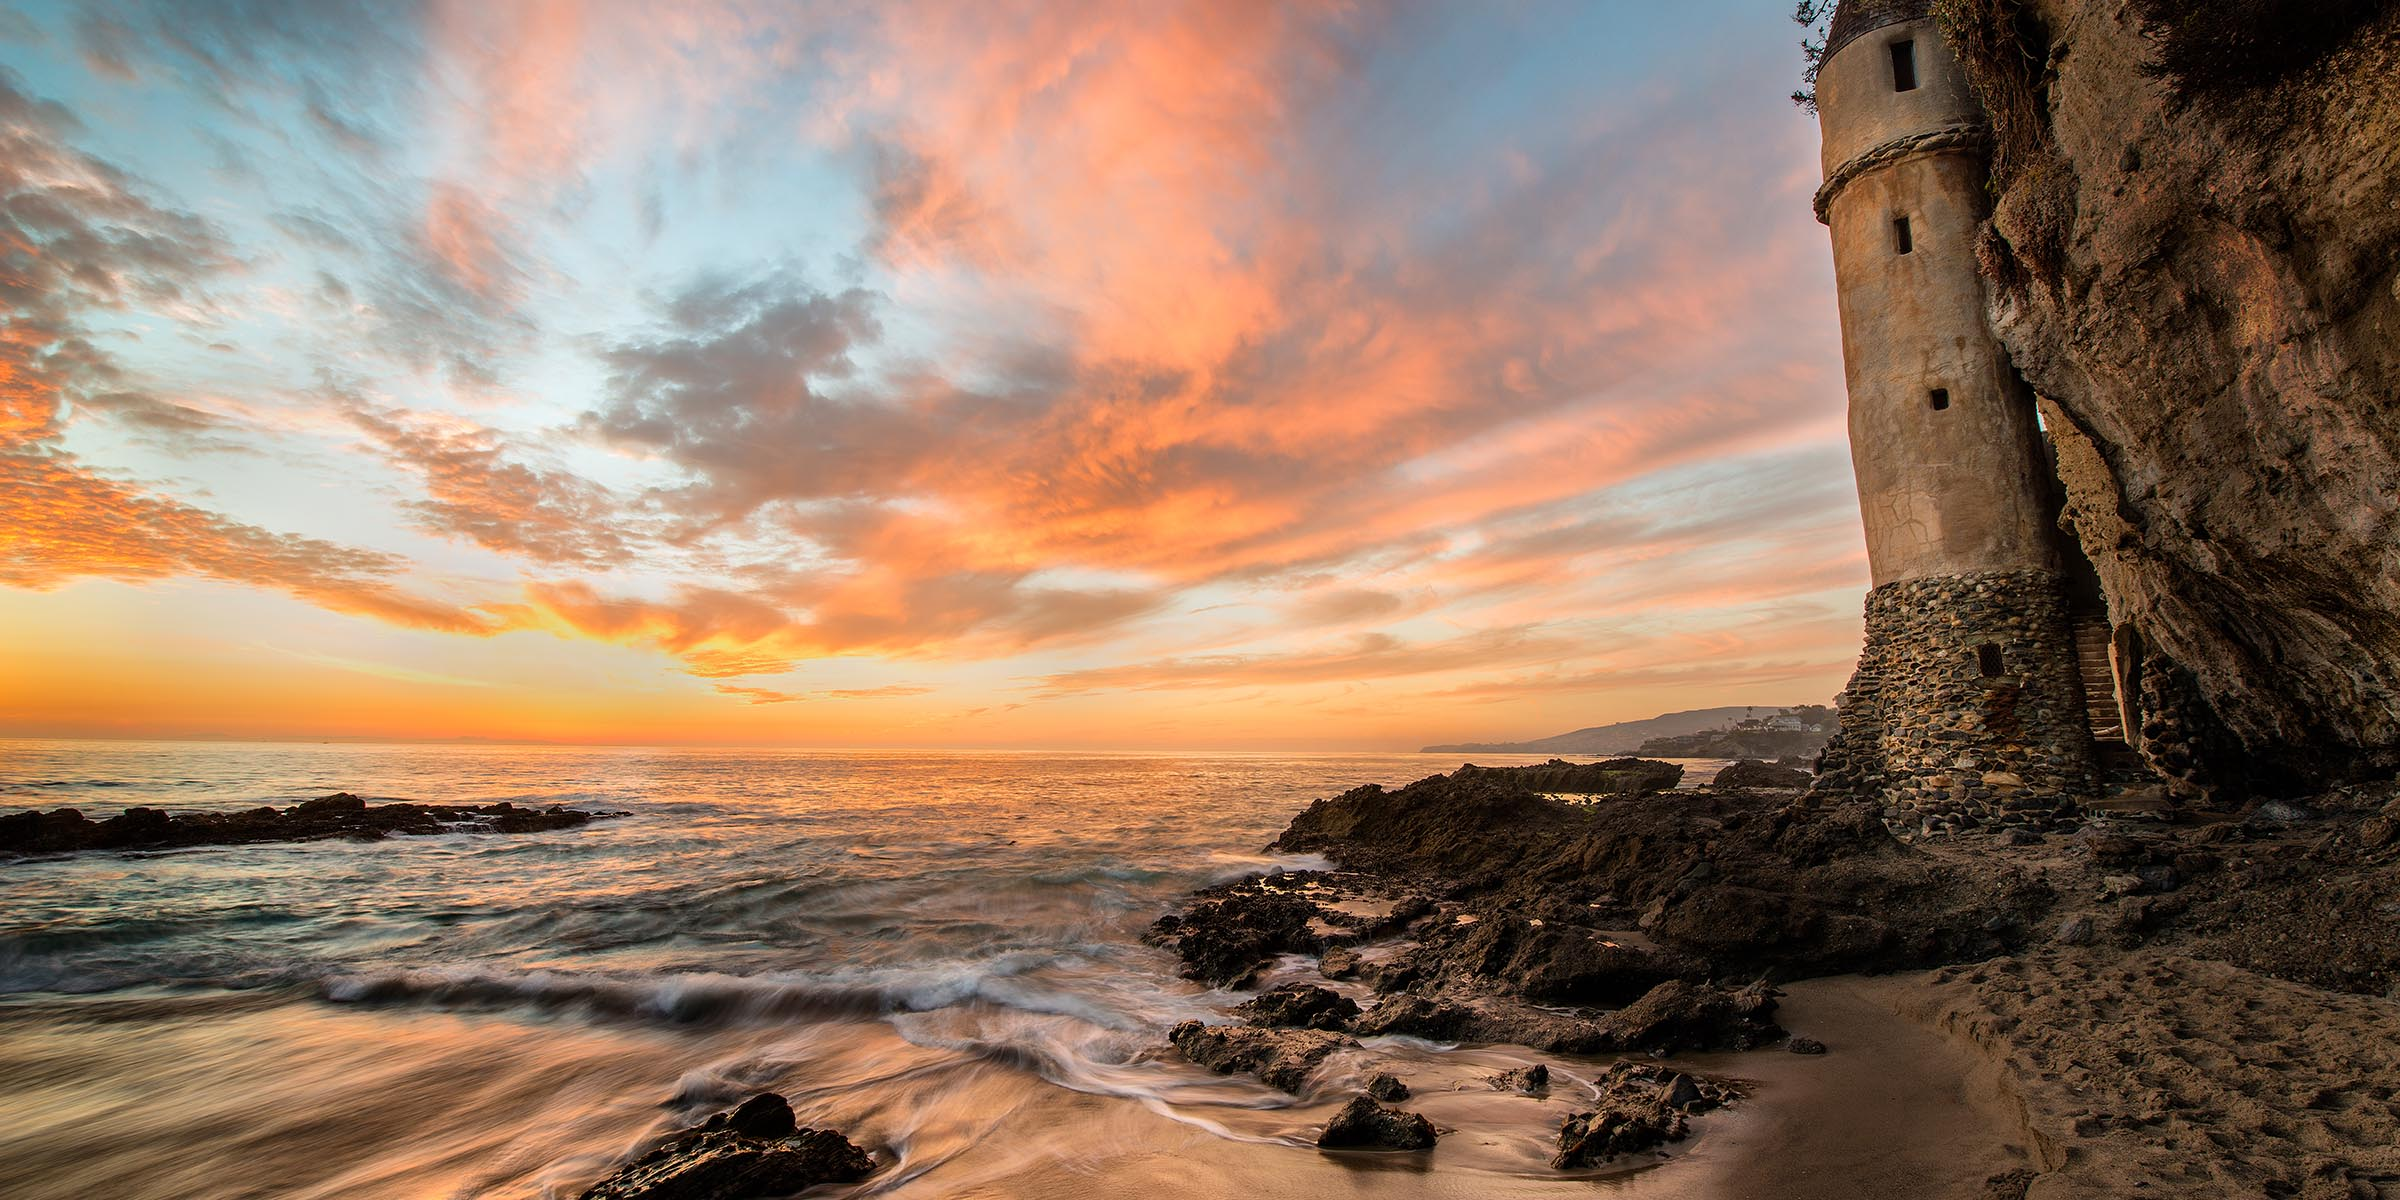 Photograph of Victoria Castle in Laguna Beach, California by Brent Goldman Photography